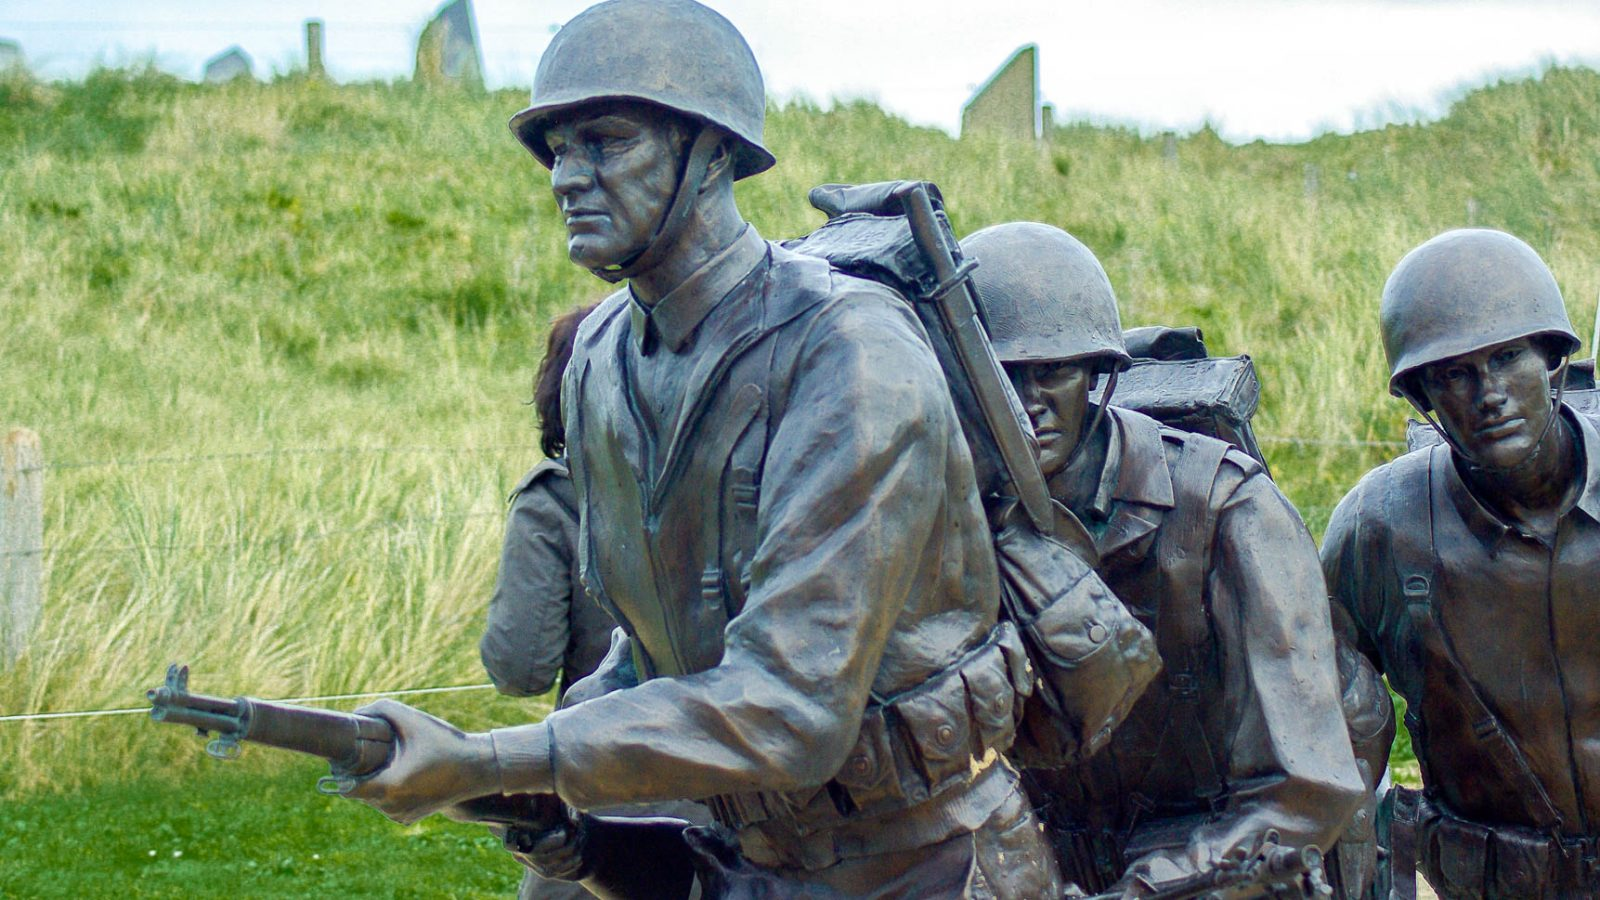 What to see at Utah Beach in Normandy, France   World War II and D-Day sites, museums, memorials, monuments, shops, restaurants, and more! #utahbeach #normandy #france #wwii #dday